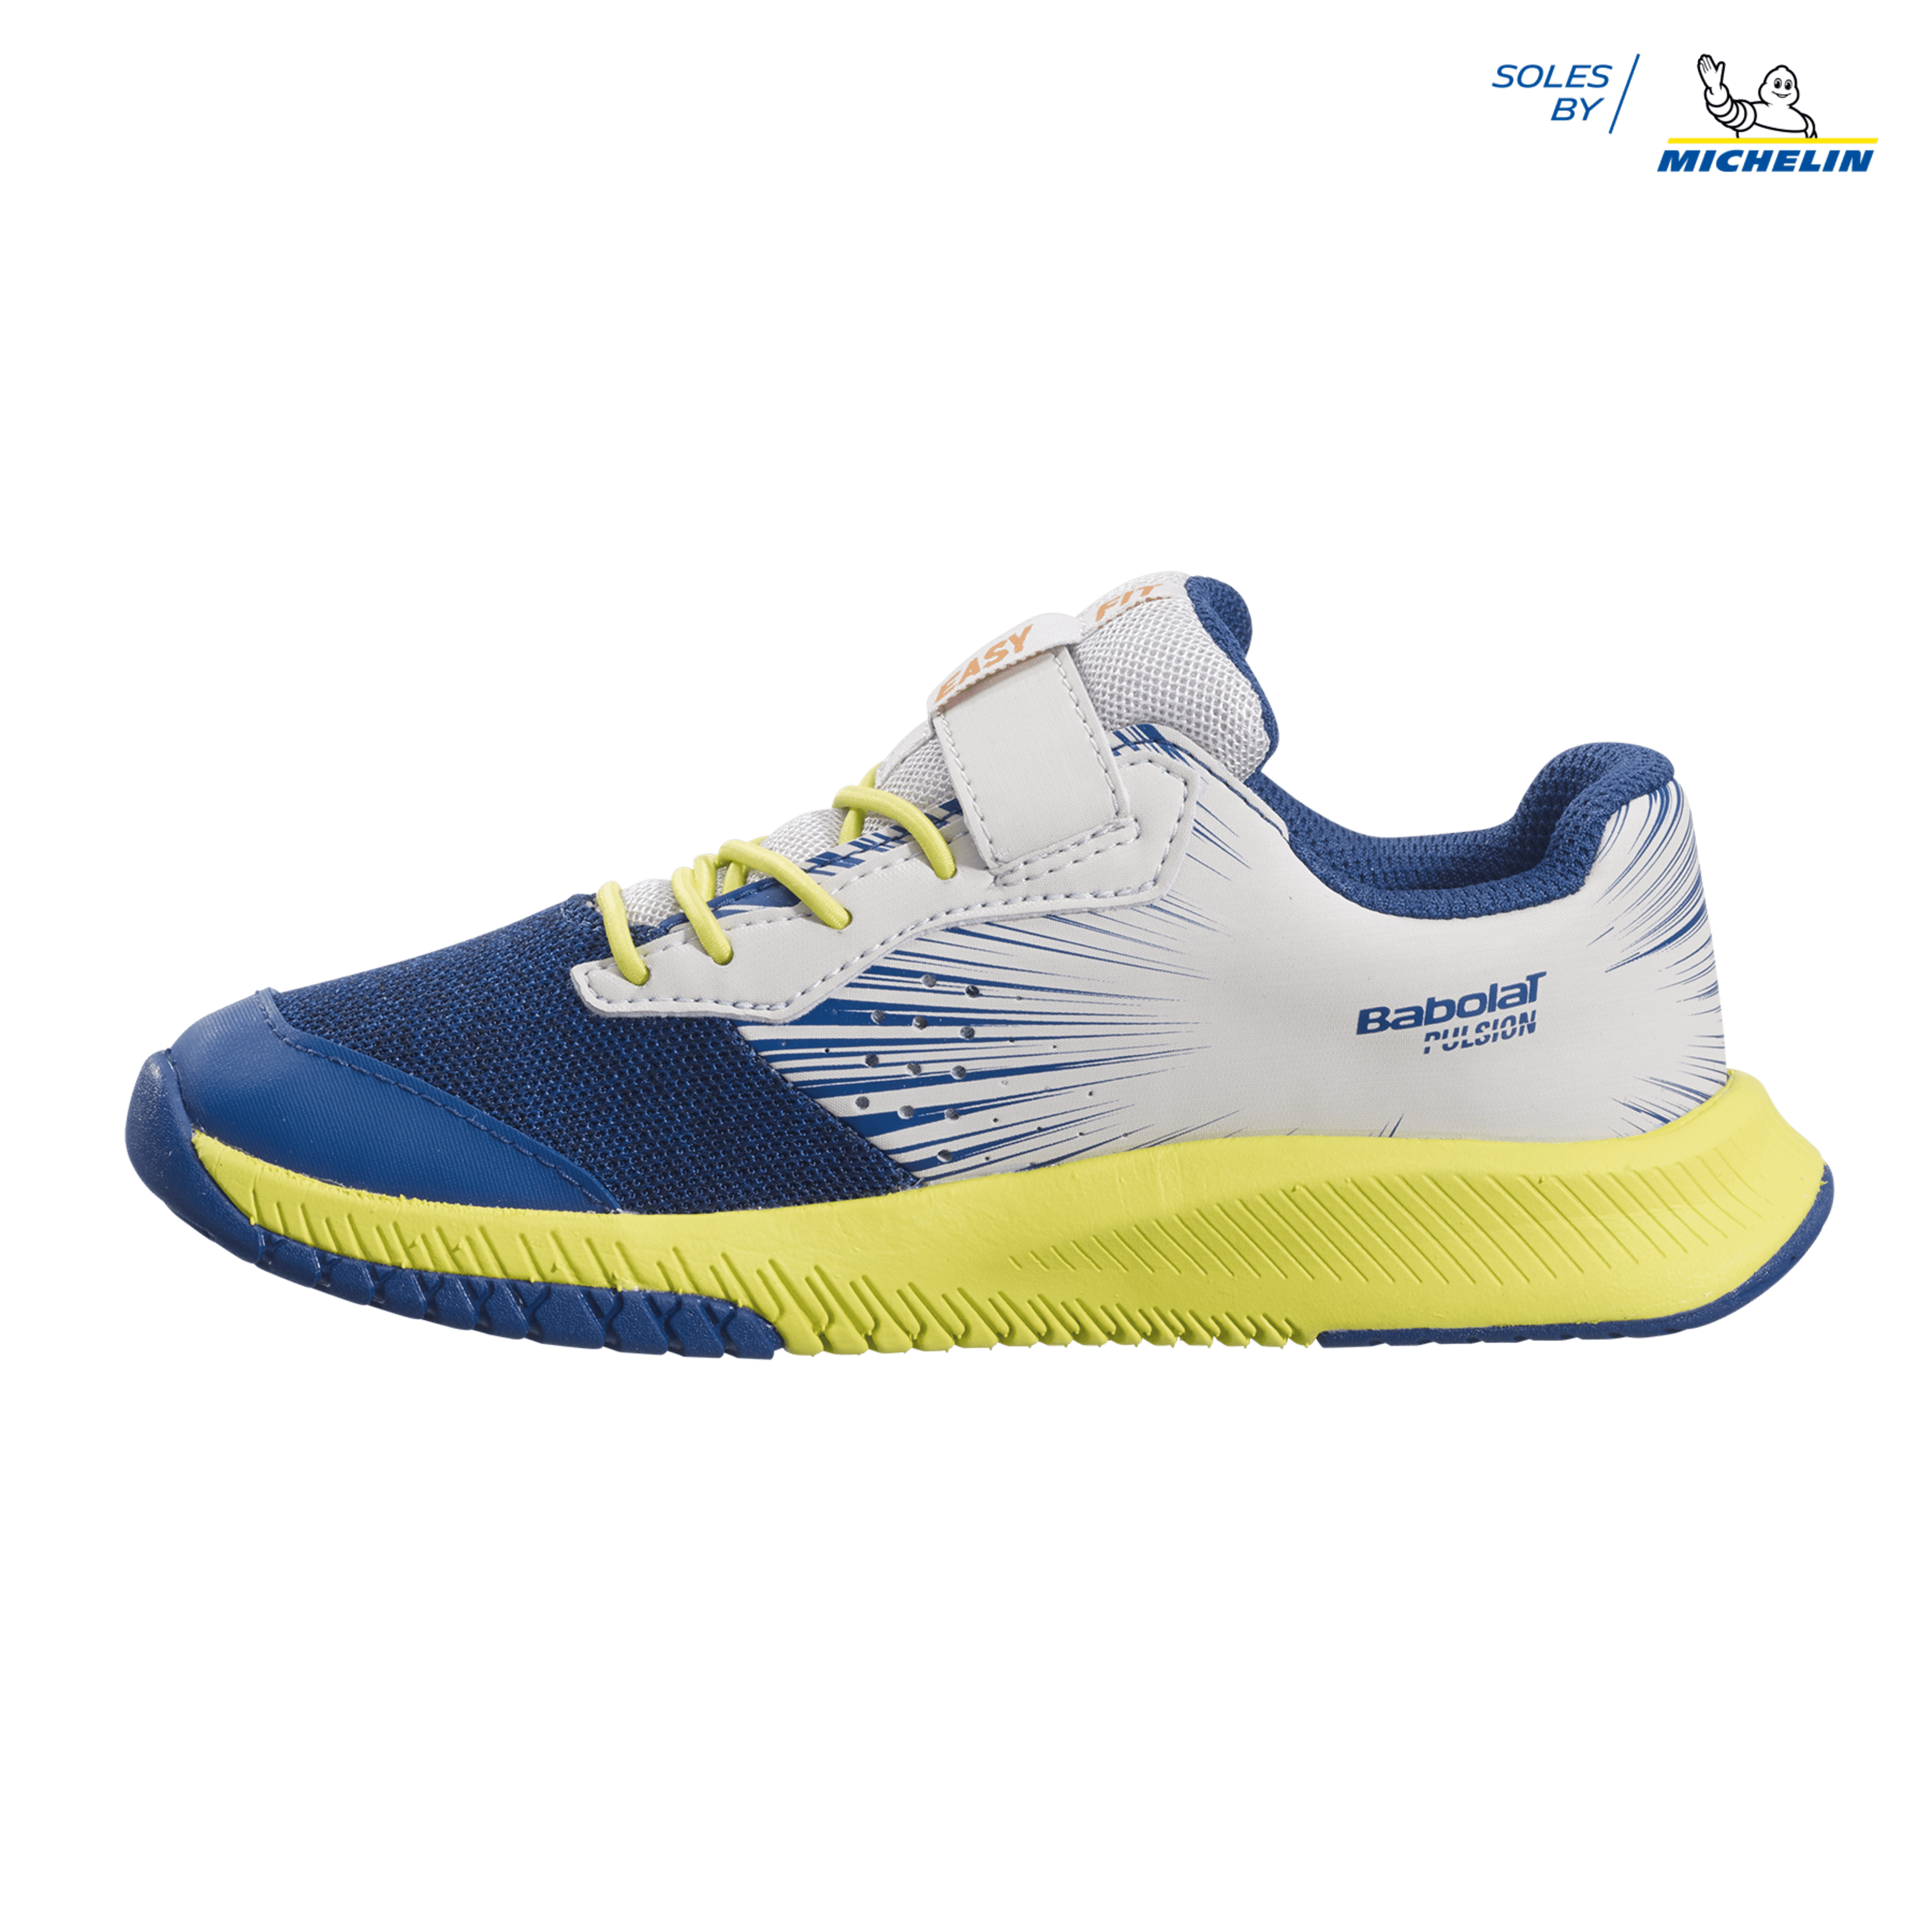 Babolat Pulsion All Court JUNIOR BOYS YOUNG KIDS Tennis Shoes Sneakers 32S18518